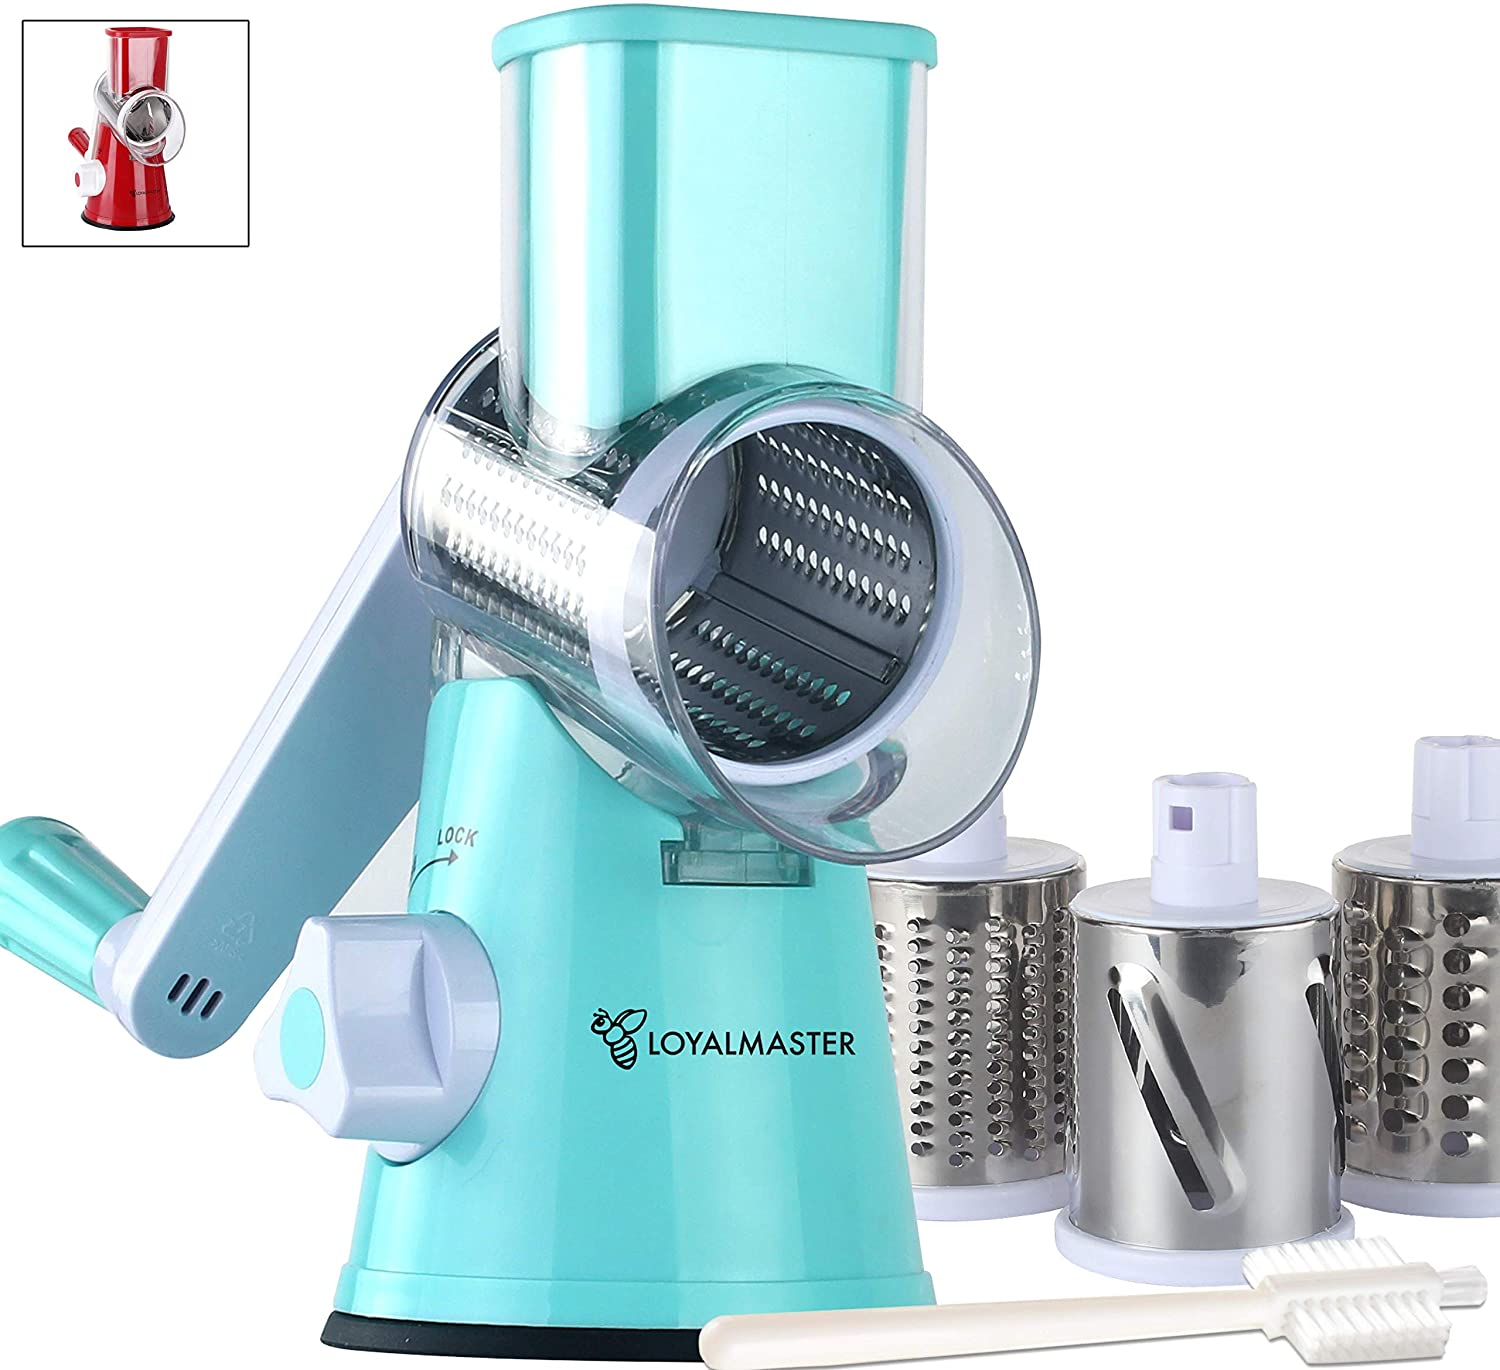 LOYALMASTER Rotary Cheese Grater - Round Drum Slicer Shredder Grinder - Hand Crank Mandoline for Vegetable, Food, Pecans, Carrots, Salad, Nut Chopper - 3 Stainless Steel Drums - Strong Suction Base